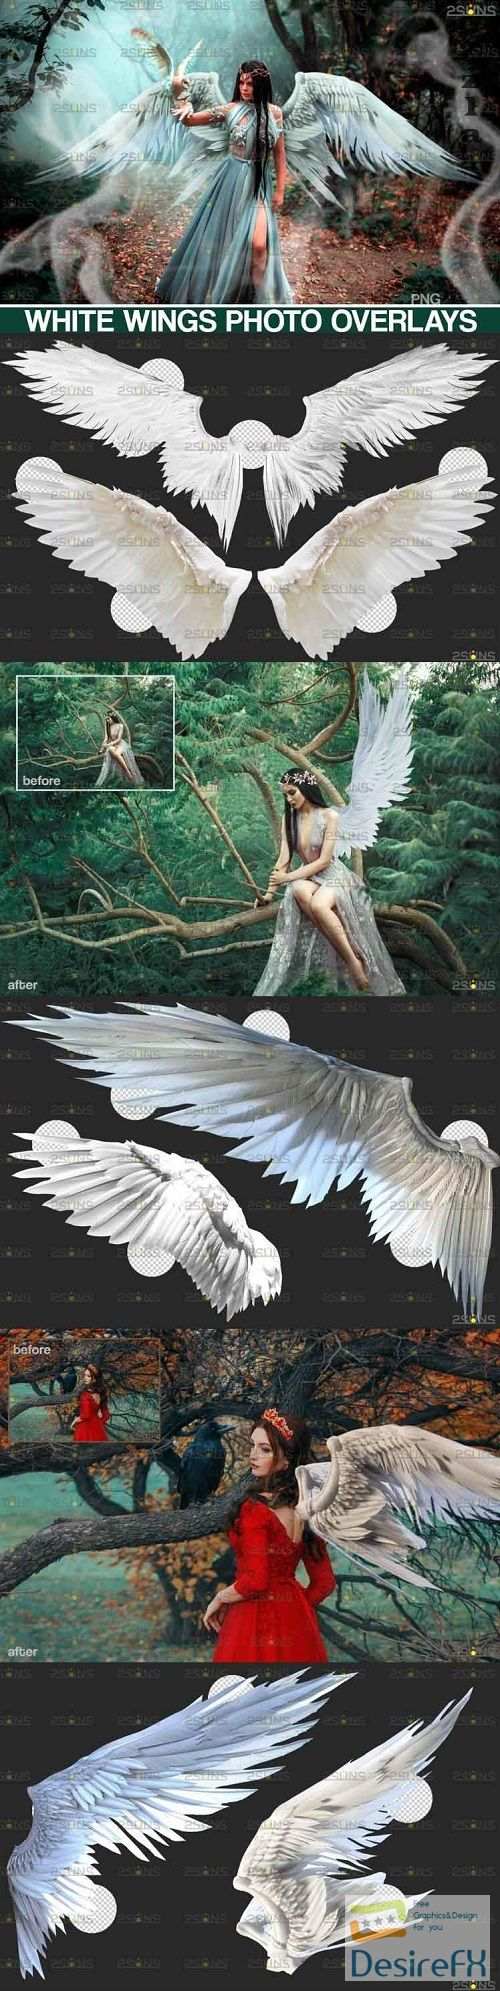 Realistic White Angel Wings Photoshop Overlays  - 644525